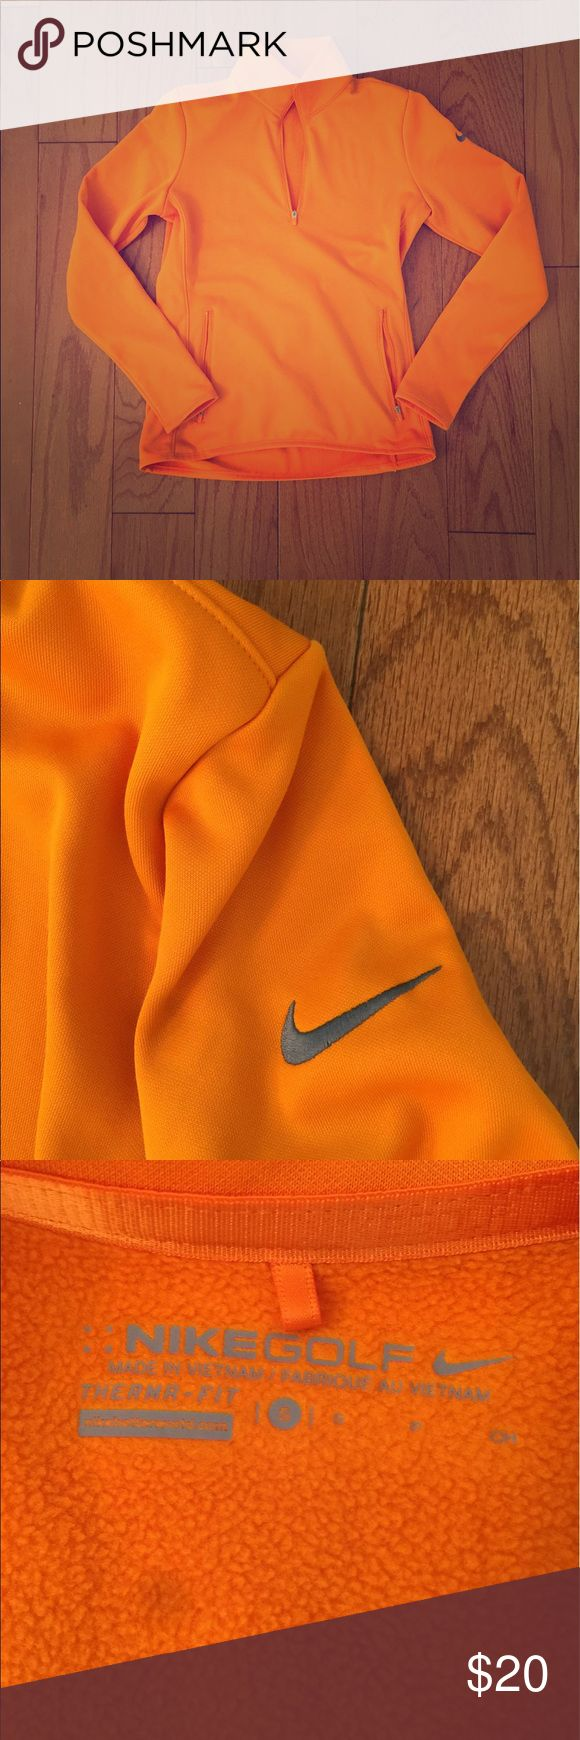 Orange Nike Golf Jacket. Size Small Beautiful orange Nike Golf jacket! Zippered front pockets. Great condition! Size small Nike Jackets & Coats